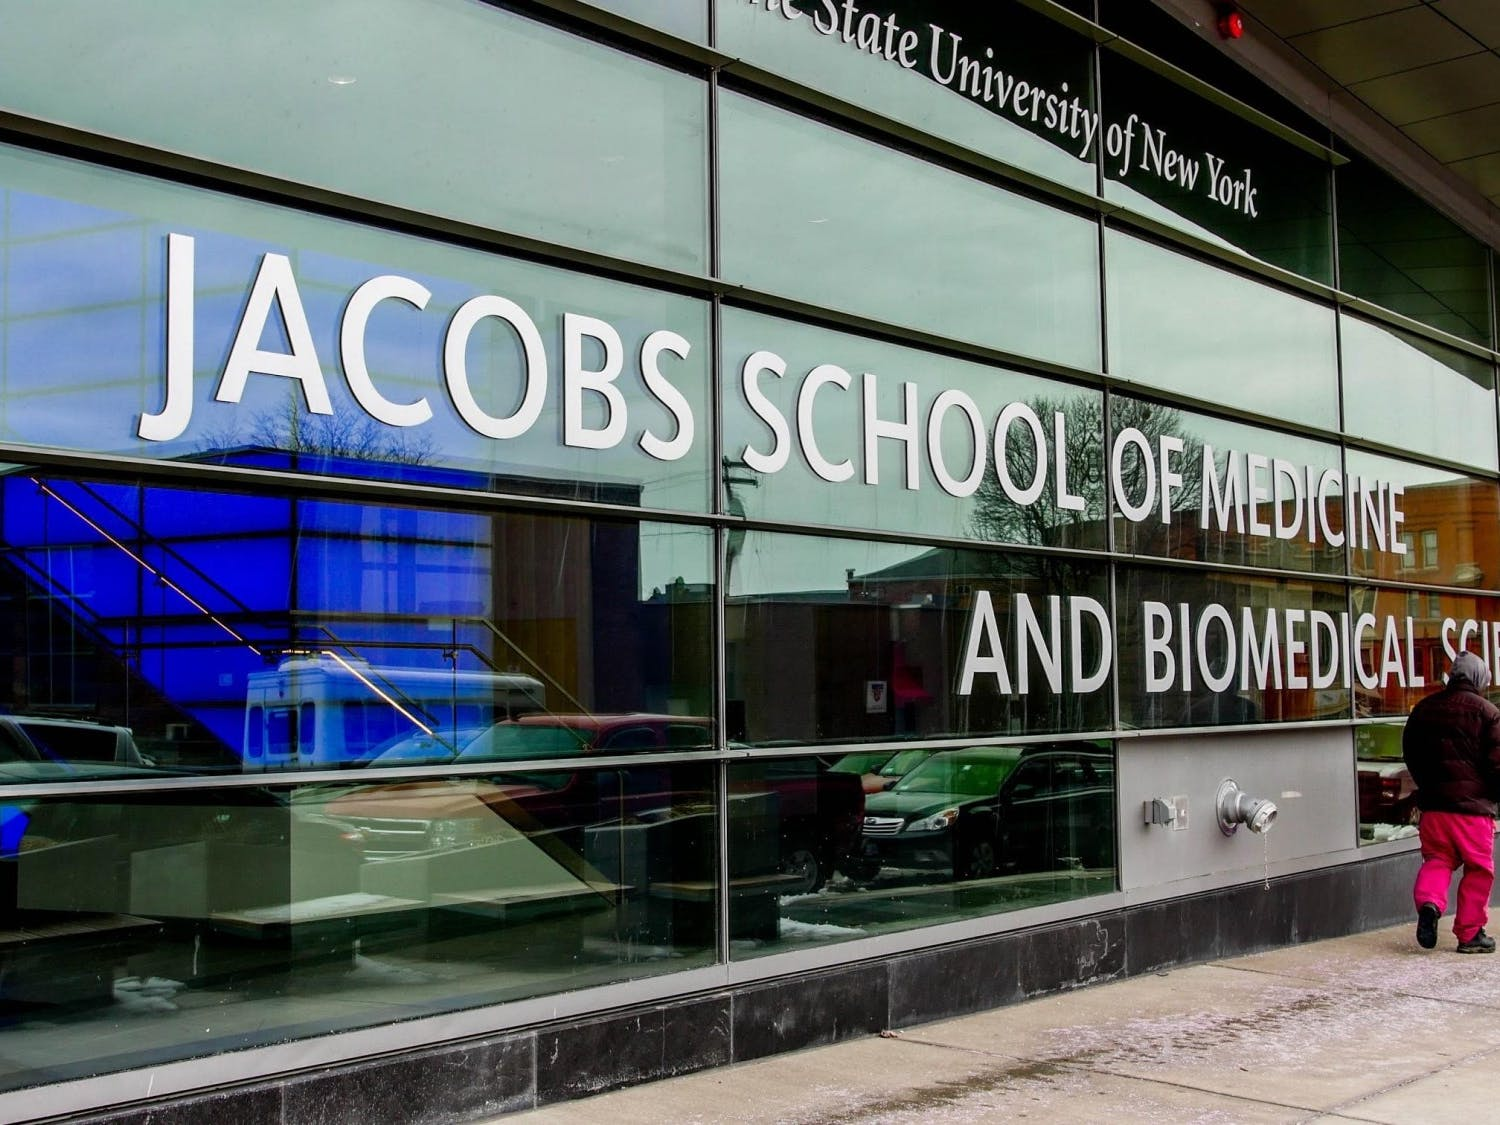 The Jacobs School, from The Spectrum archives.